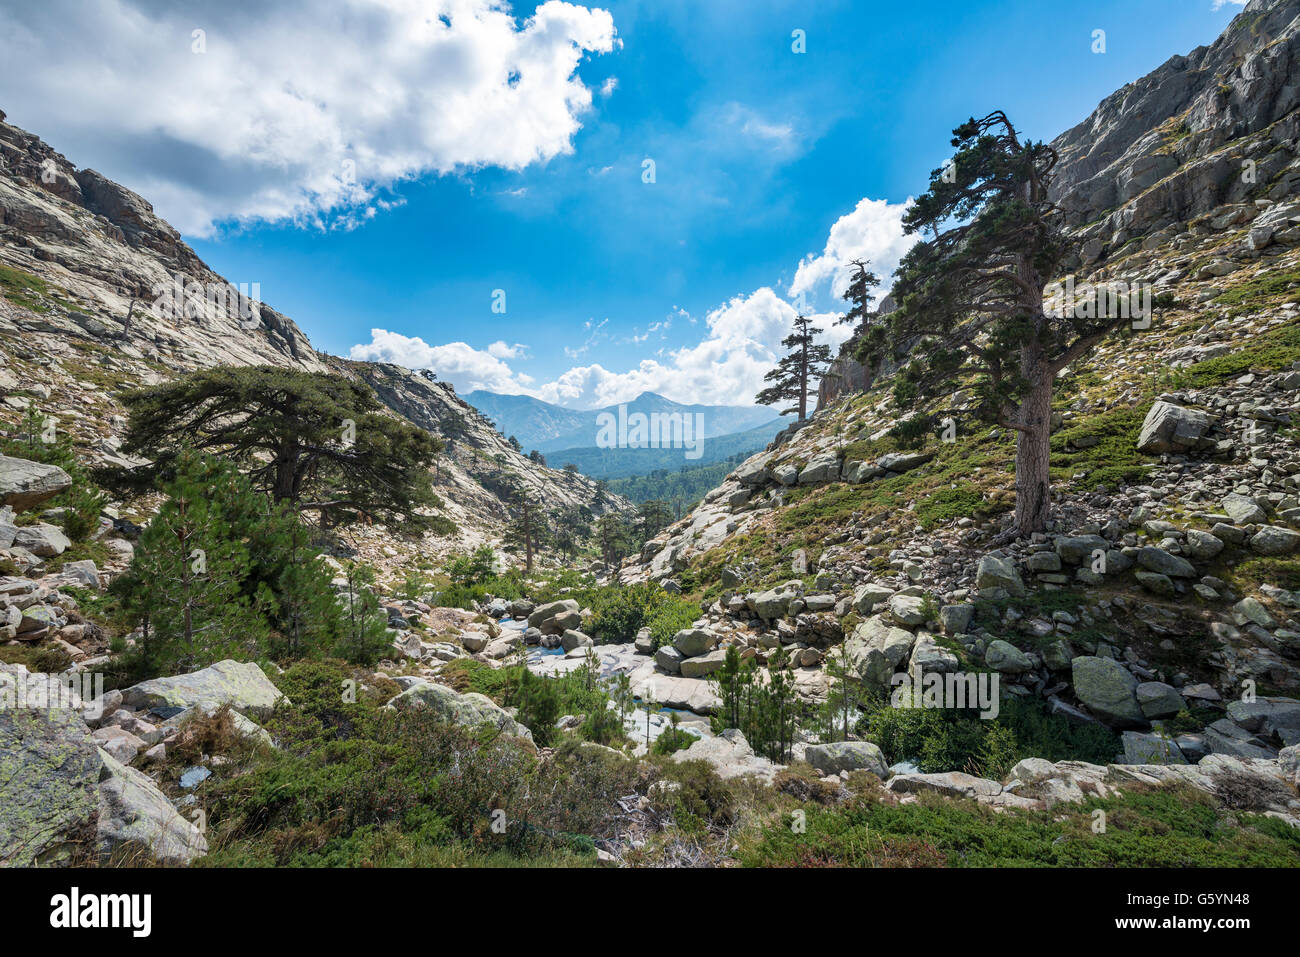 Mountainous landscape in Golo Valley, Nature Park of Corsica, Parc naturel régional de Corse, Corsica, France - Stock Image